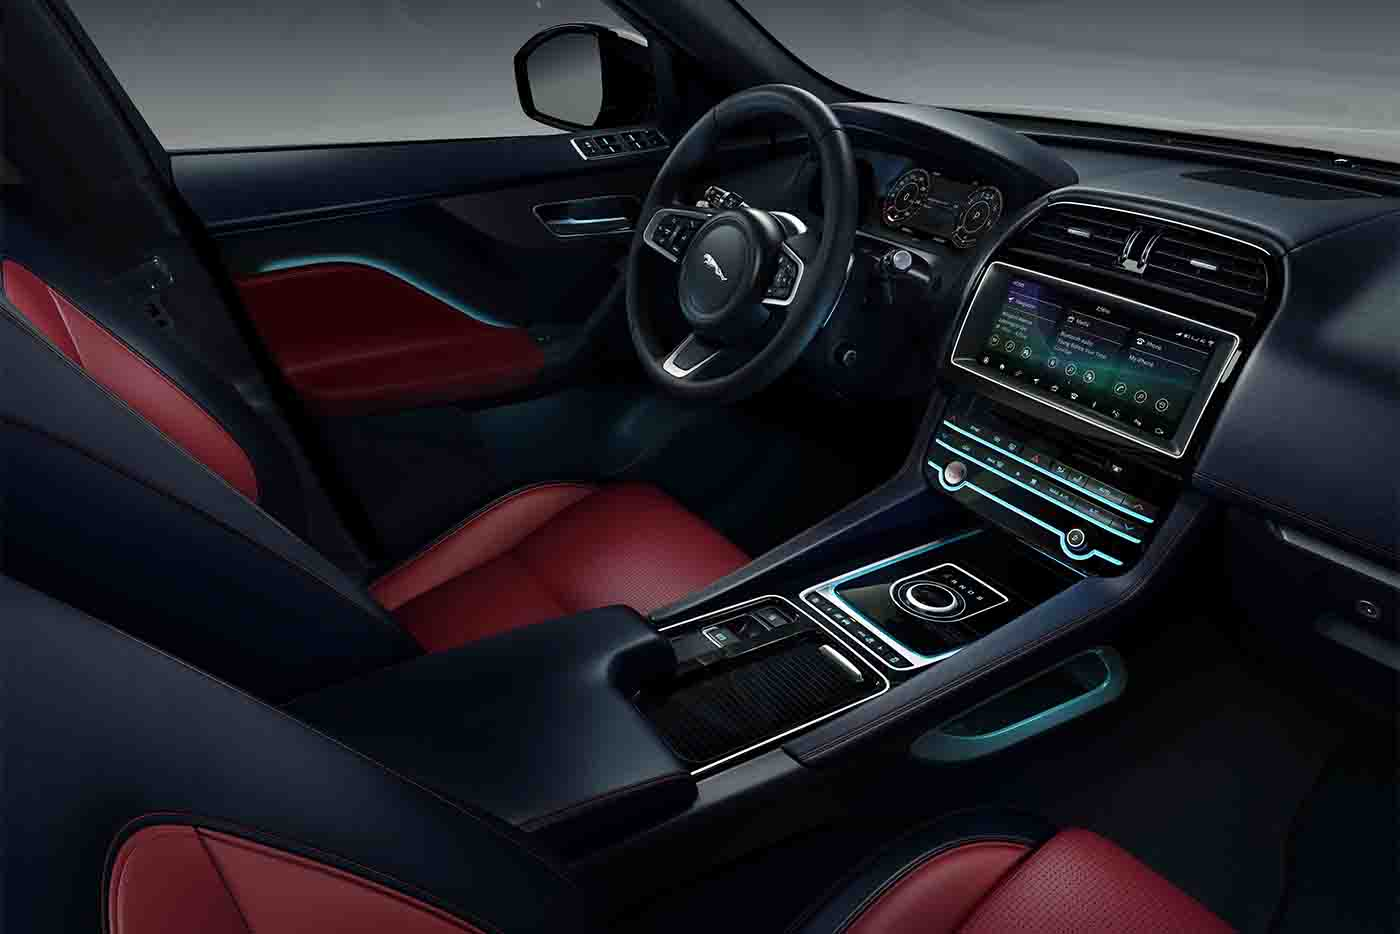 jag-f-pace-20my-chequered-flag-interior-190319-012-dx.jpg